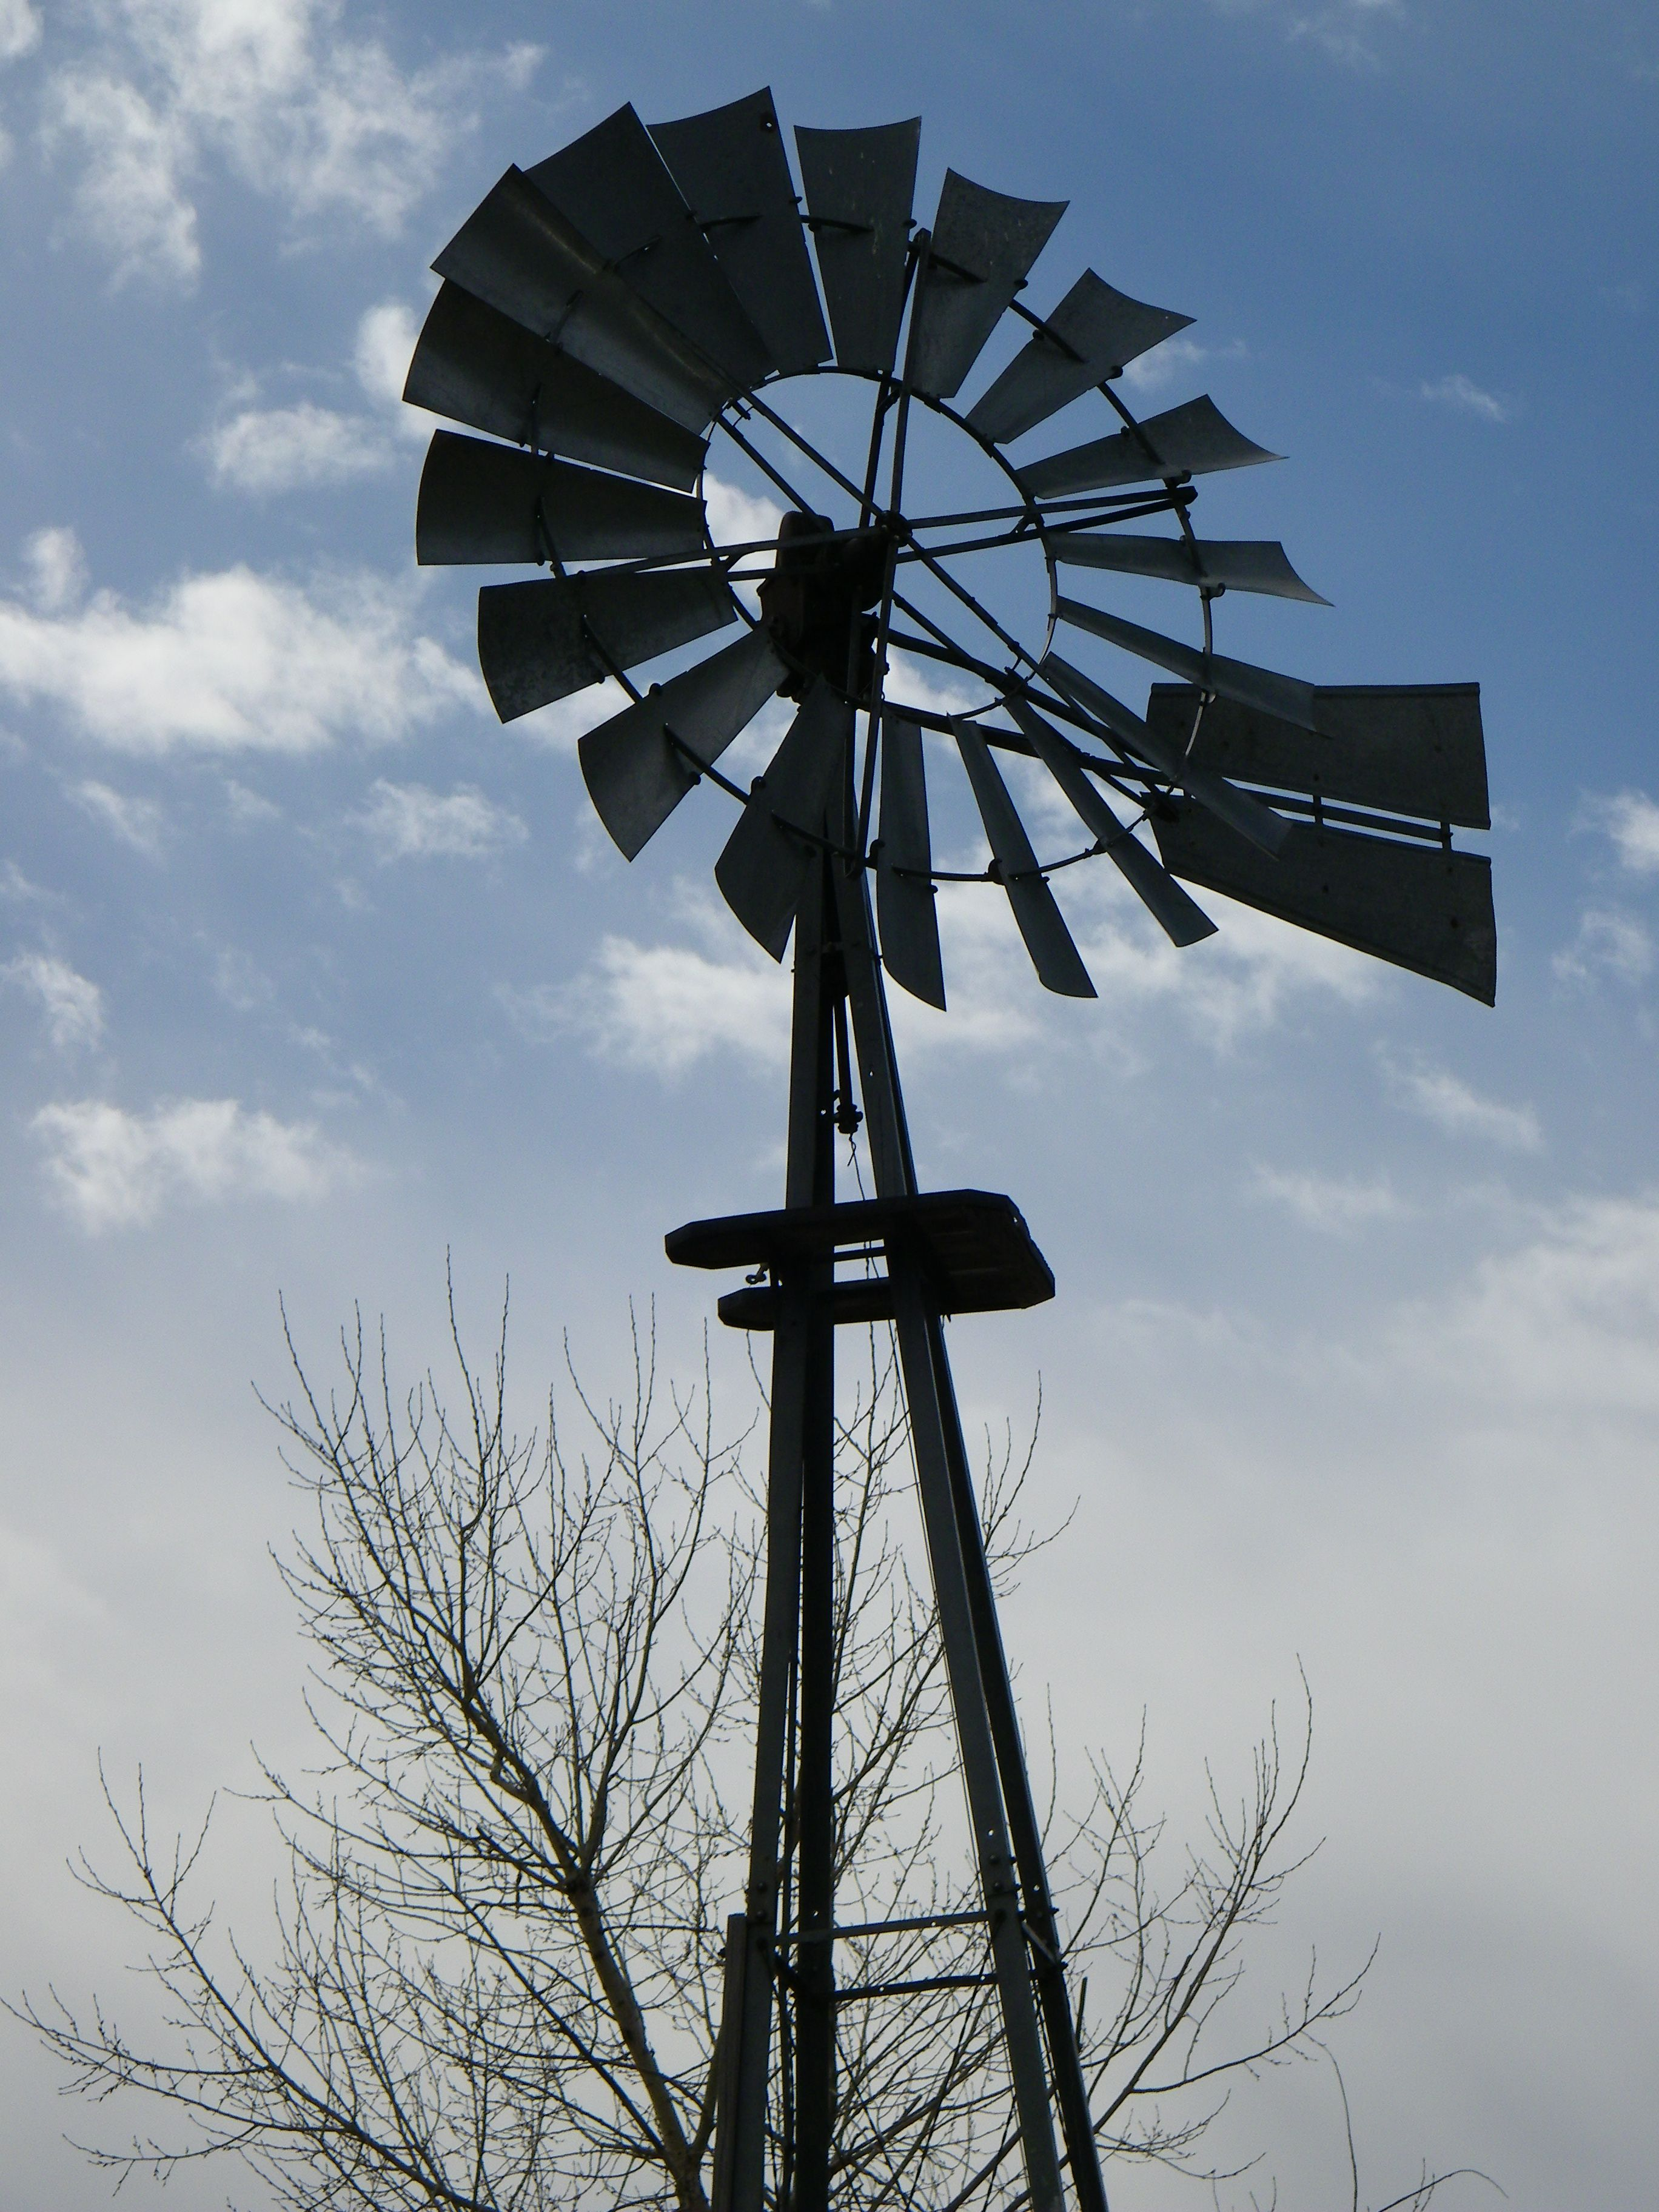 I love old windmills. There aren't too many any more. I have many ...